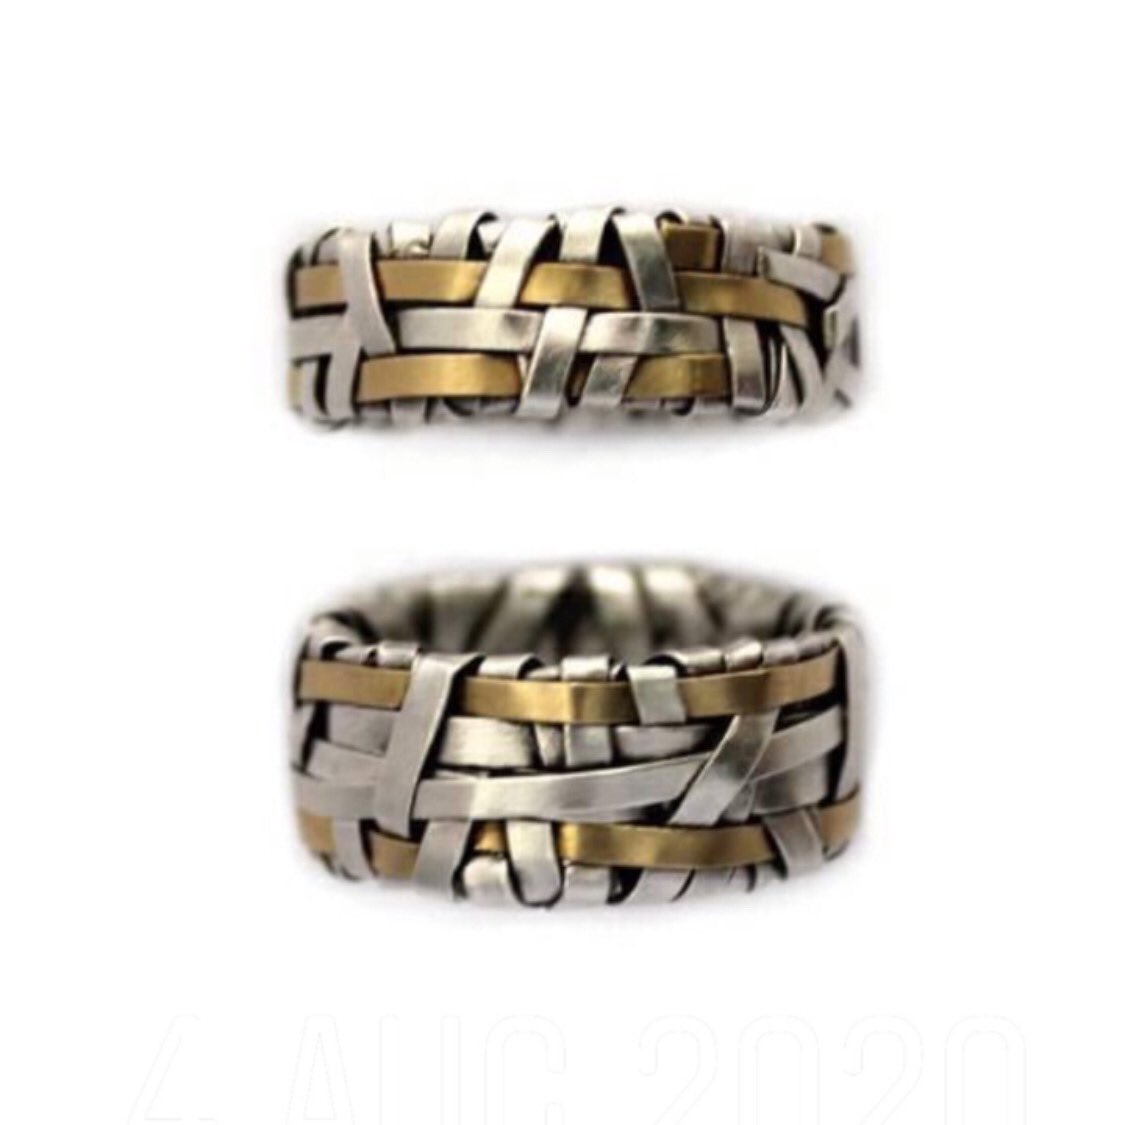 woven series rings ~ celebrating our interconnectedness   #rings #WeddingRings #ArtJewellery #LoveIsLove #TheySaidYes #SheSaidYes #HeSaidYes #wedding #ring #GettingMarried #LoveWins 🎉